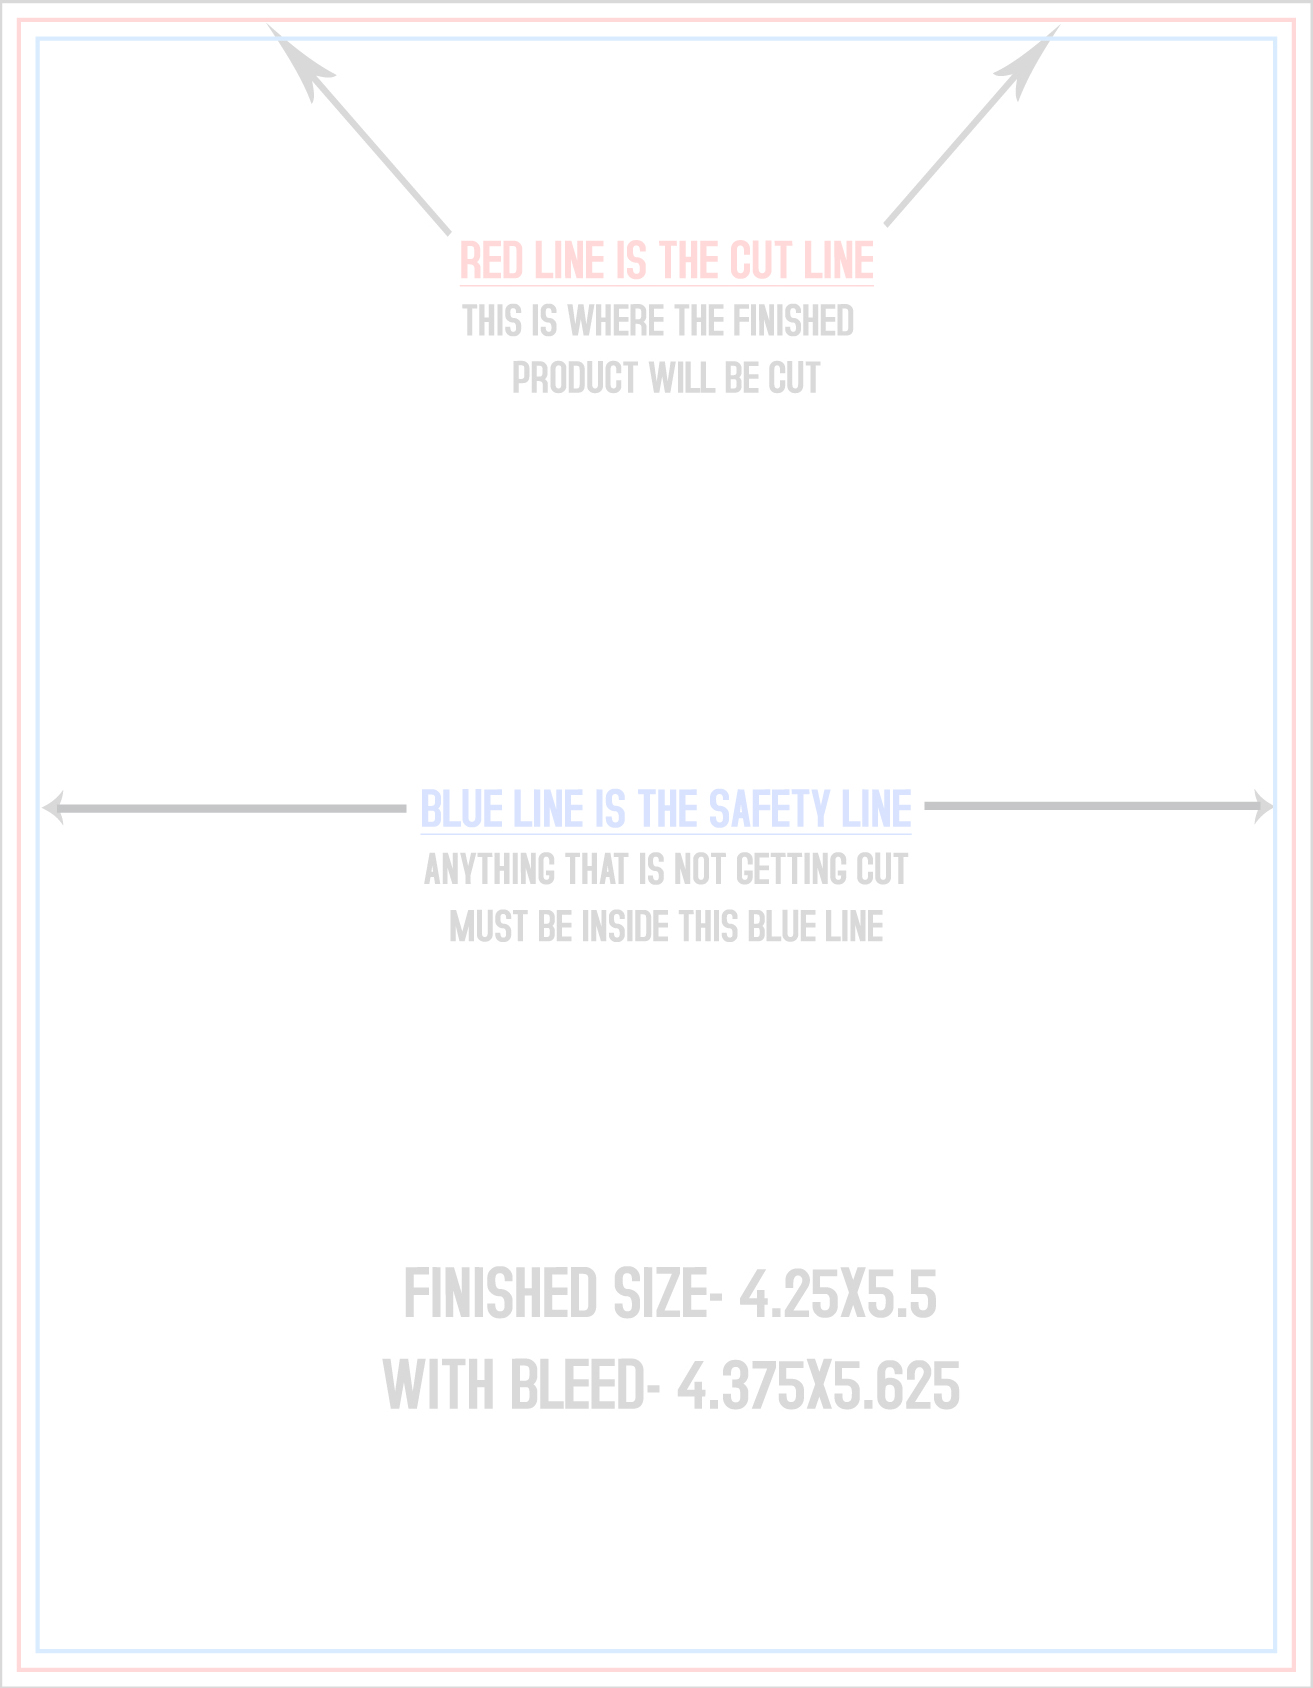 4 Over Certified Postcard Templates - Vertical